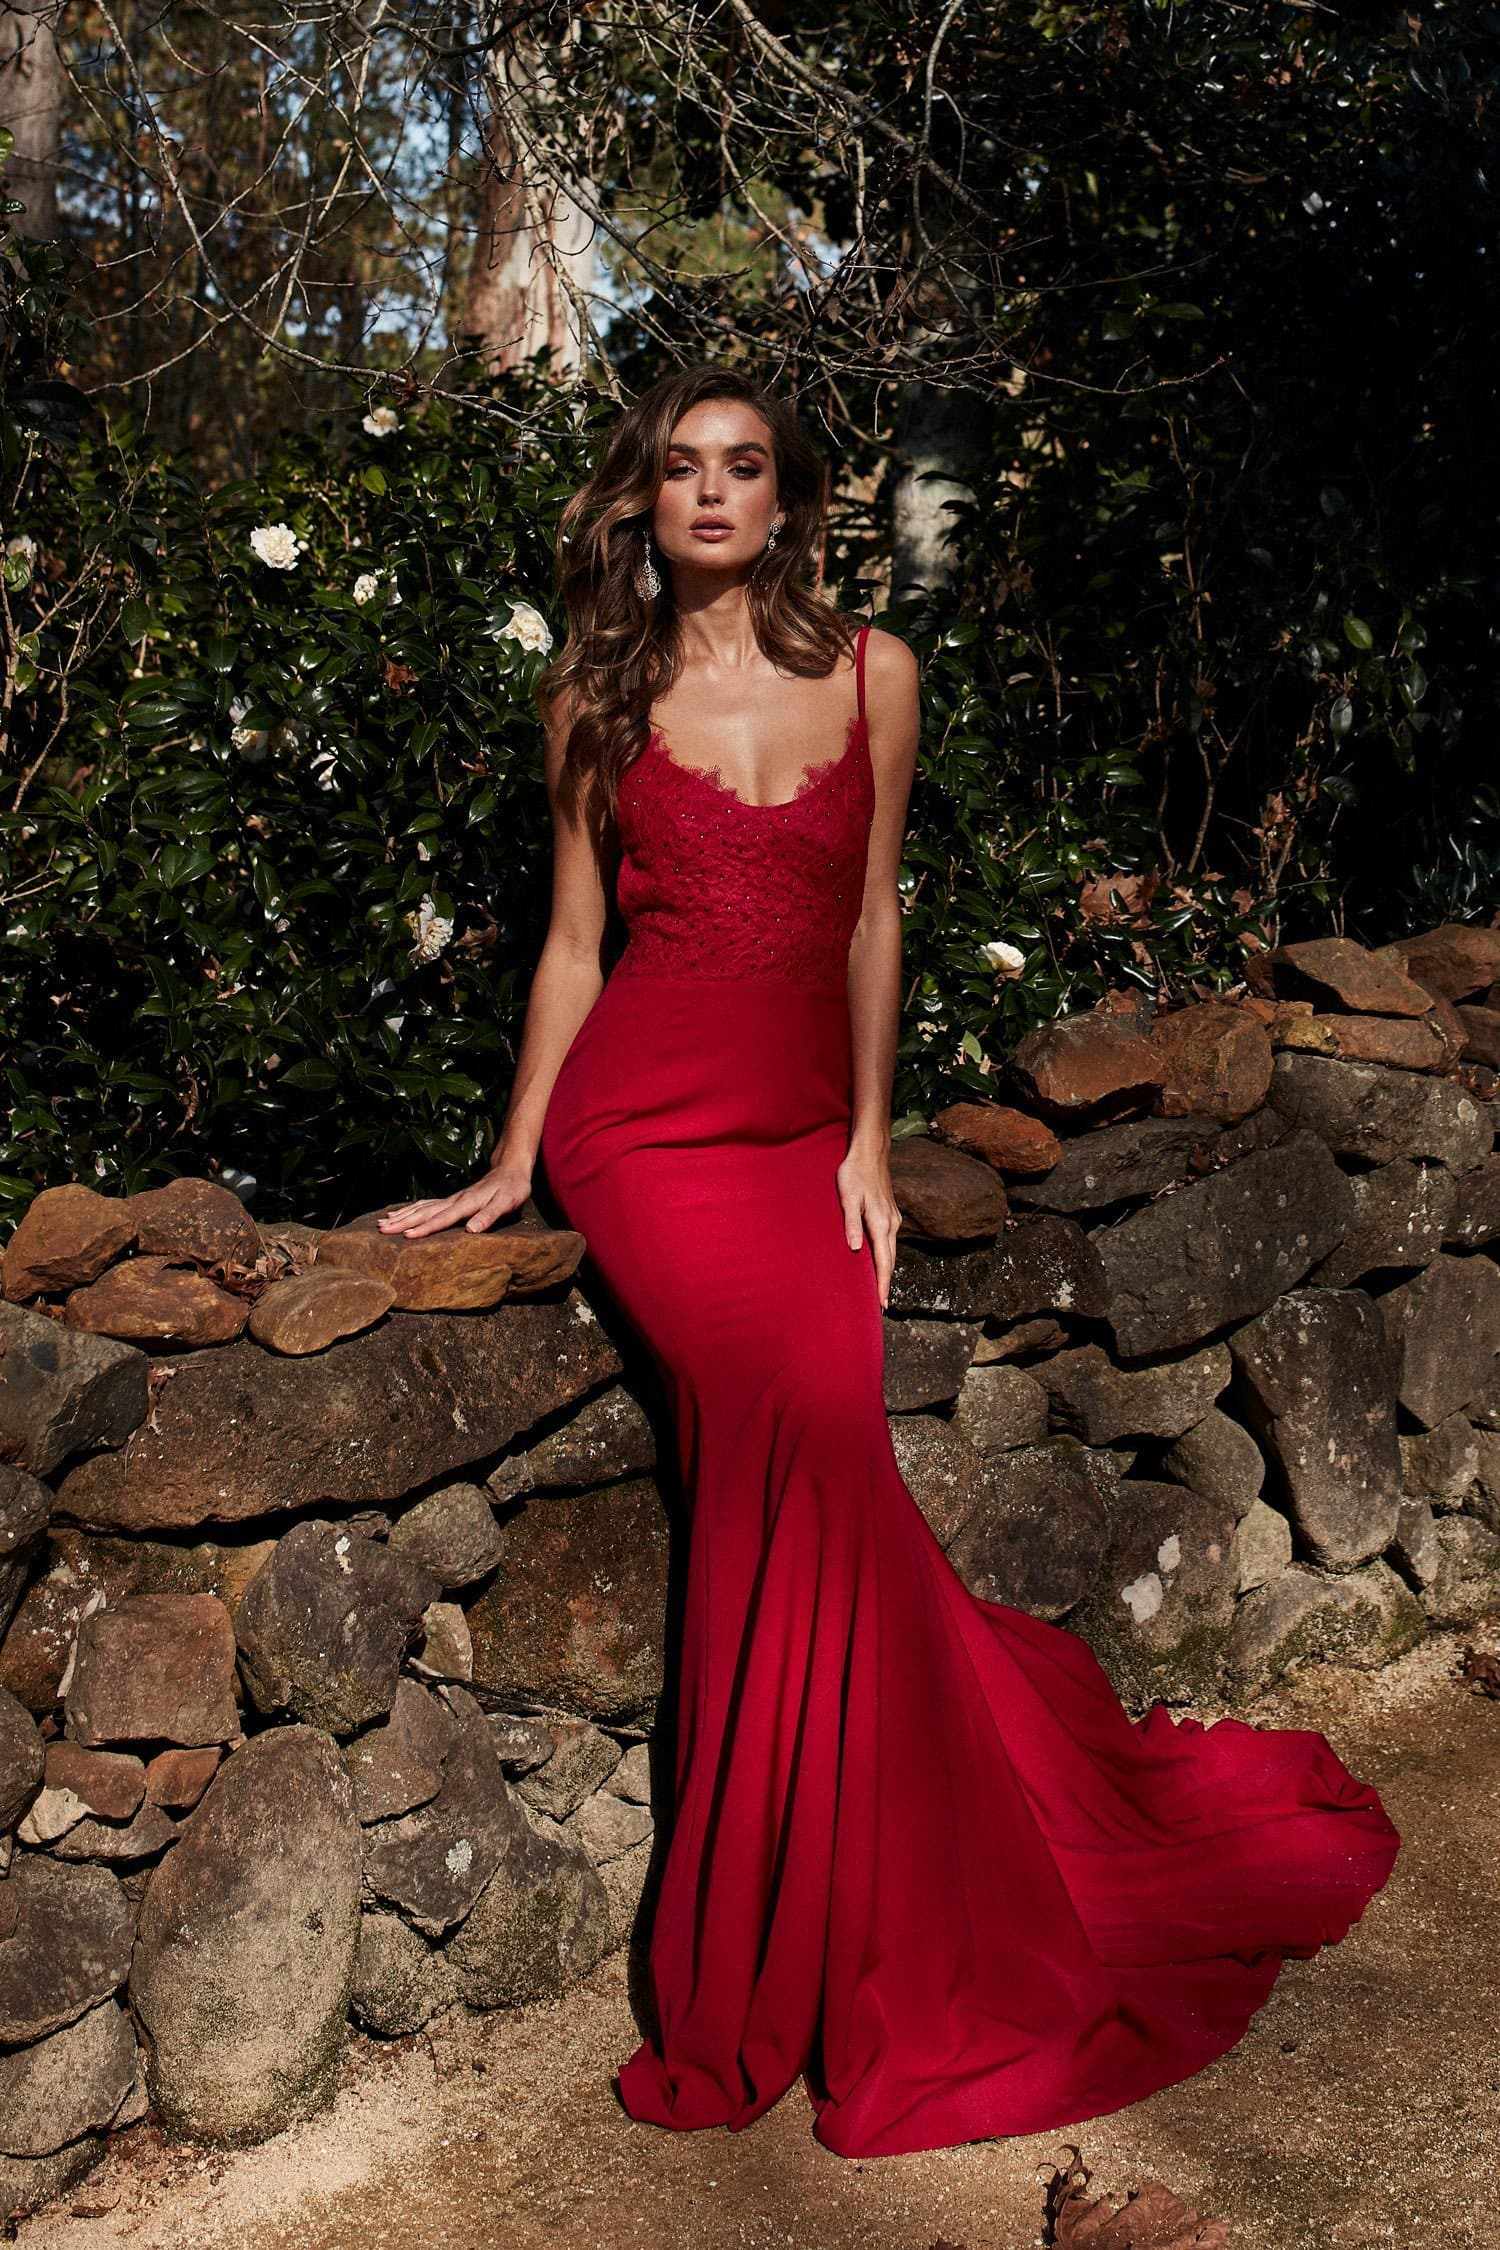 Anika Formal Gown - Deep Red Ponti Lace Crystal Adorned Lace Up Dress